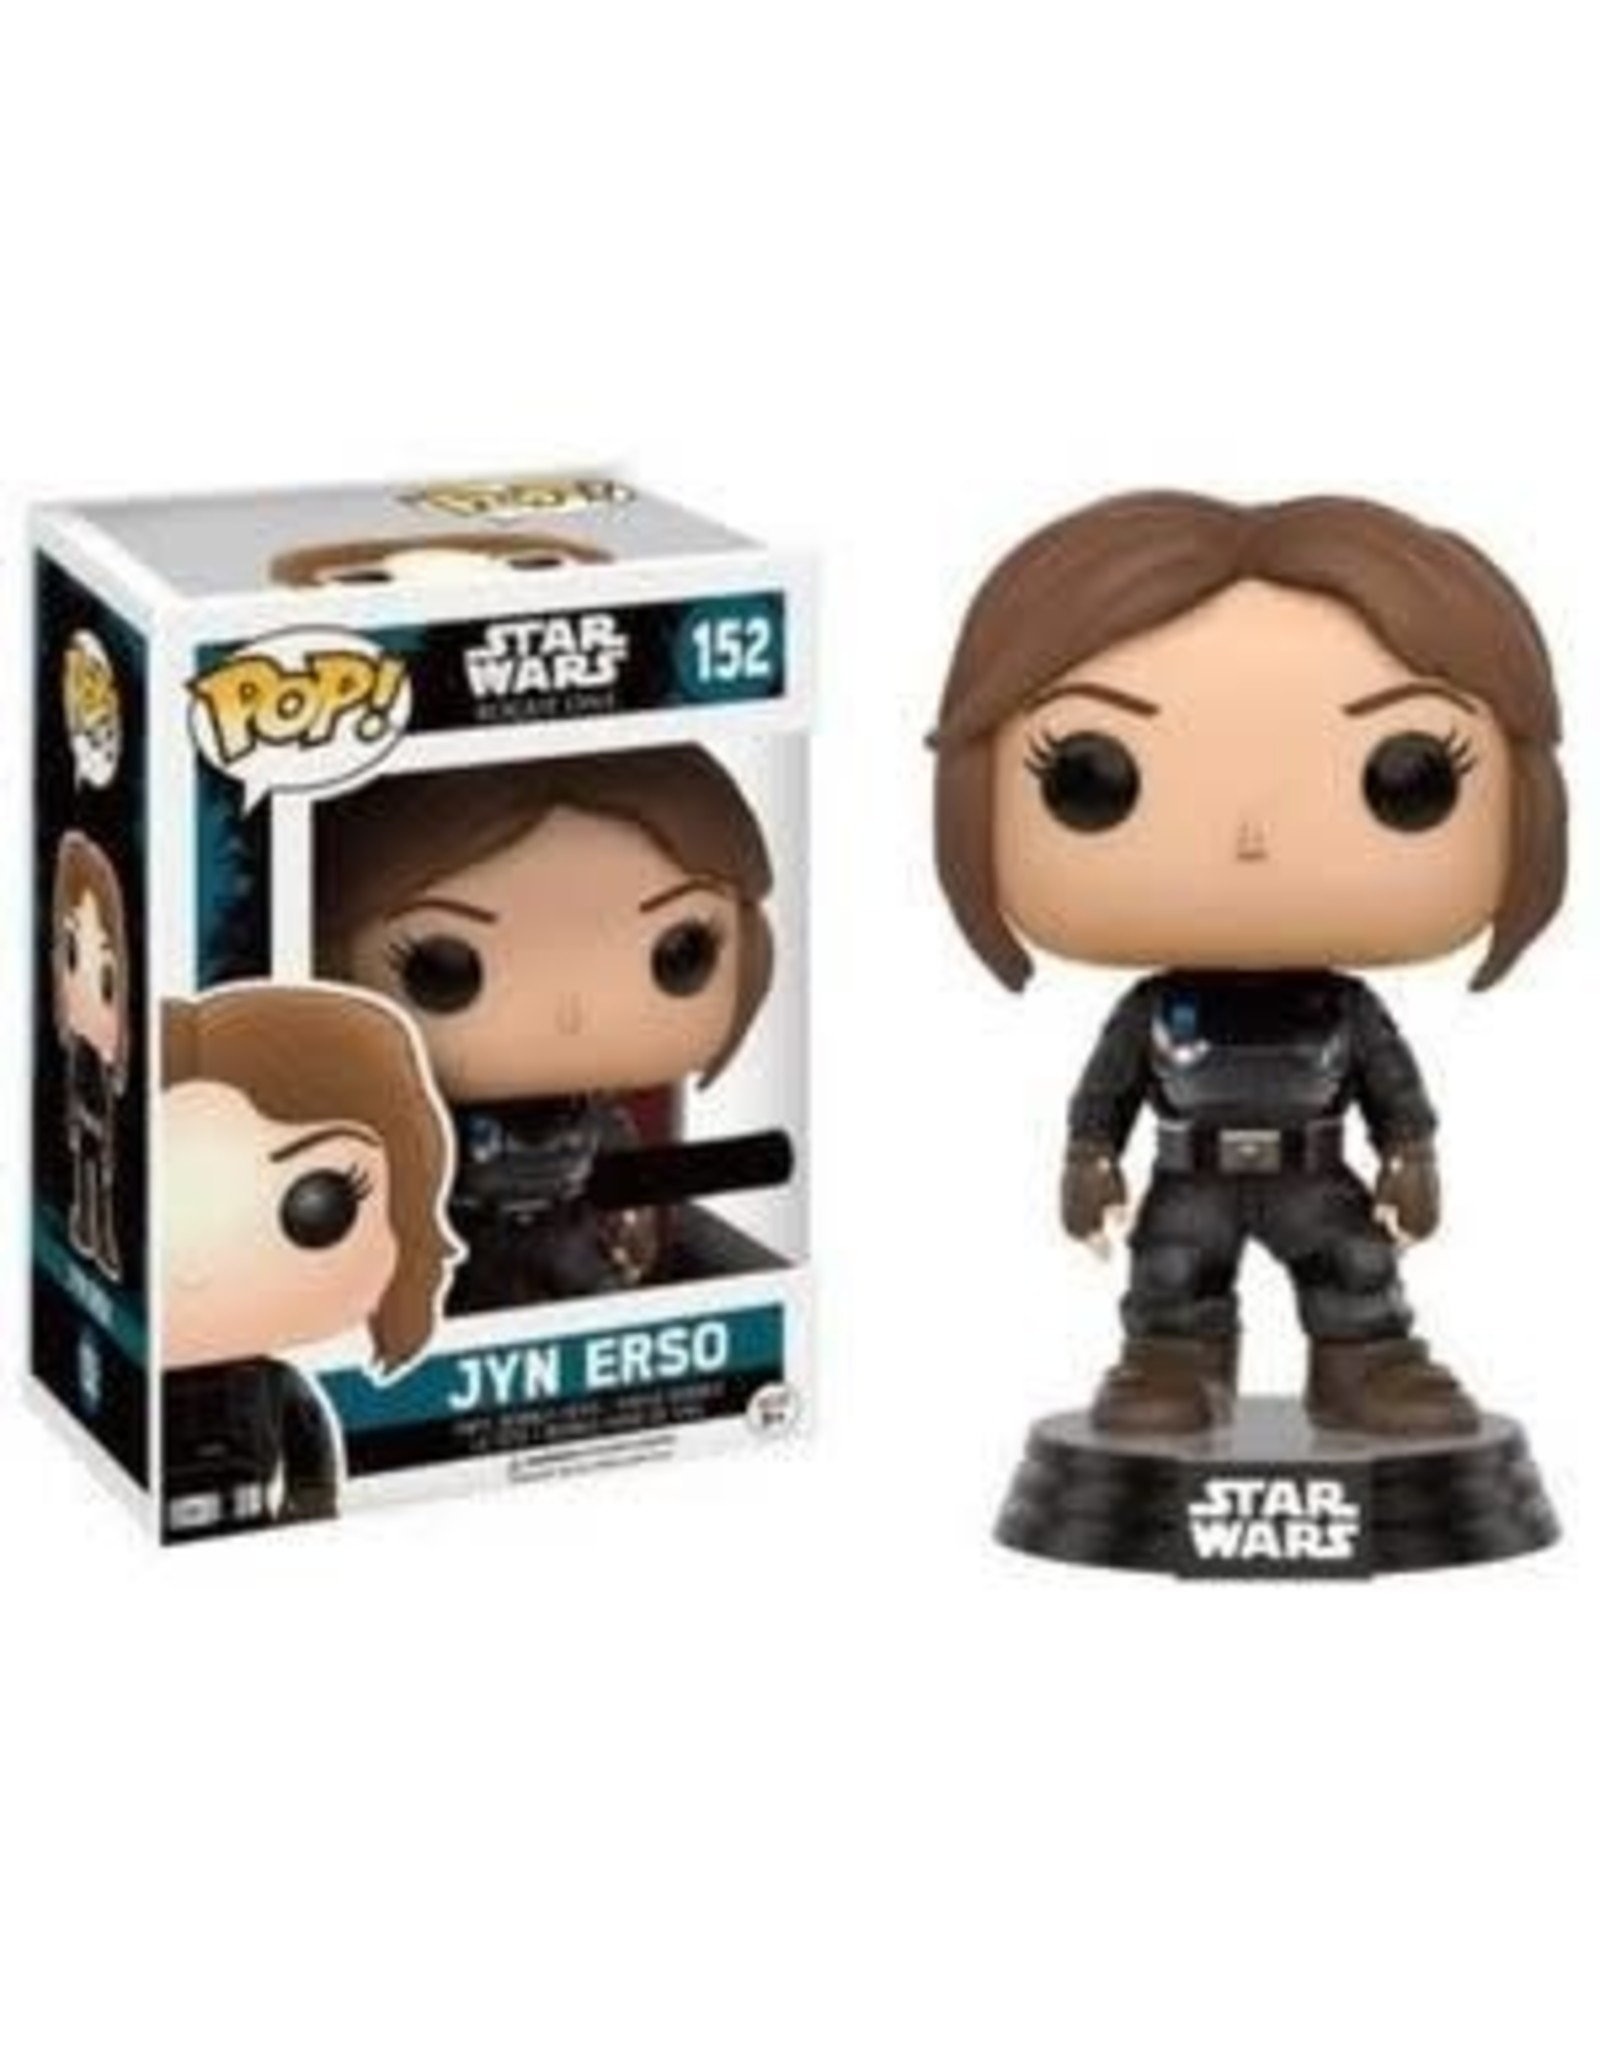 Funko STAR WARS ROGUE ONEPOP! N° 152 - Jym Erso Limited